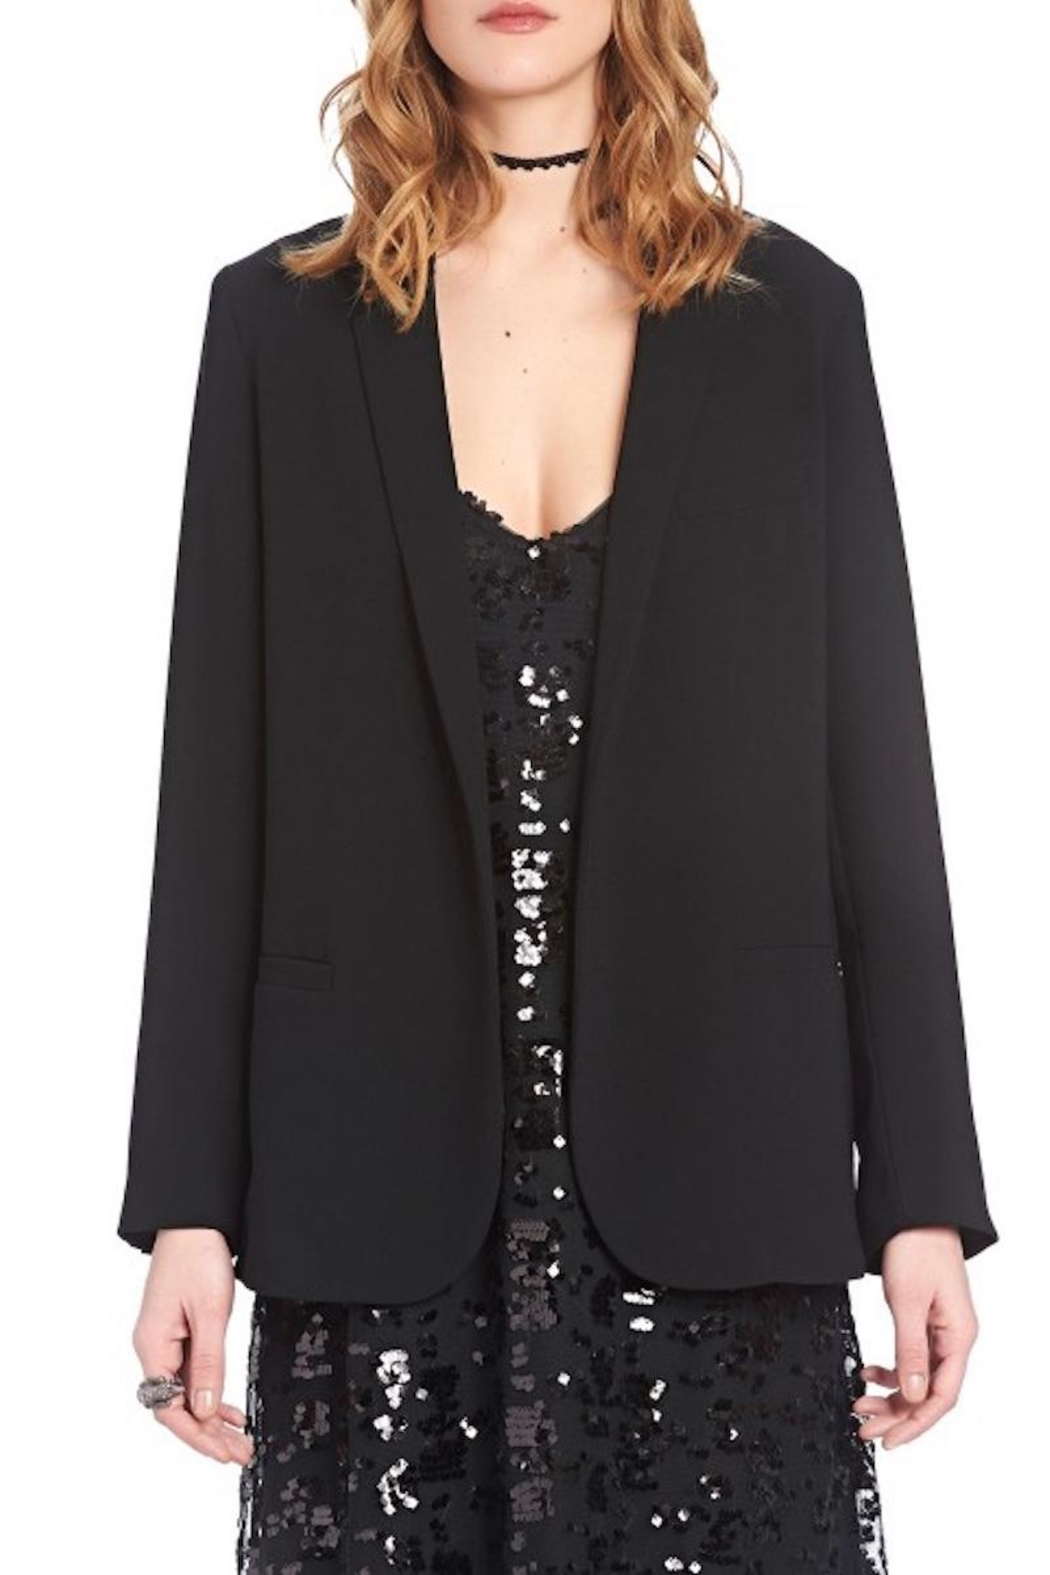 Ottod'ame Flowing Fabric Jacket - Front Cropped Image